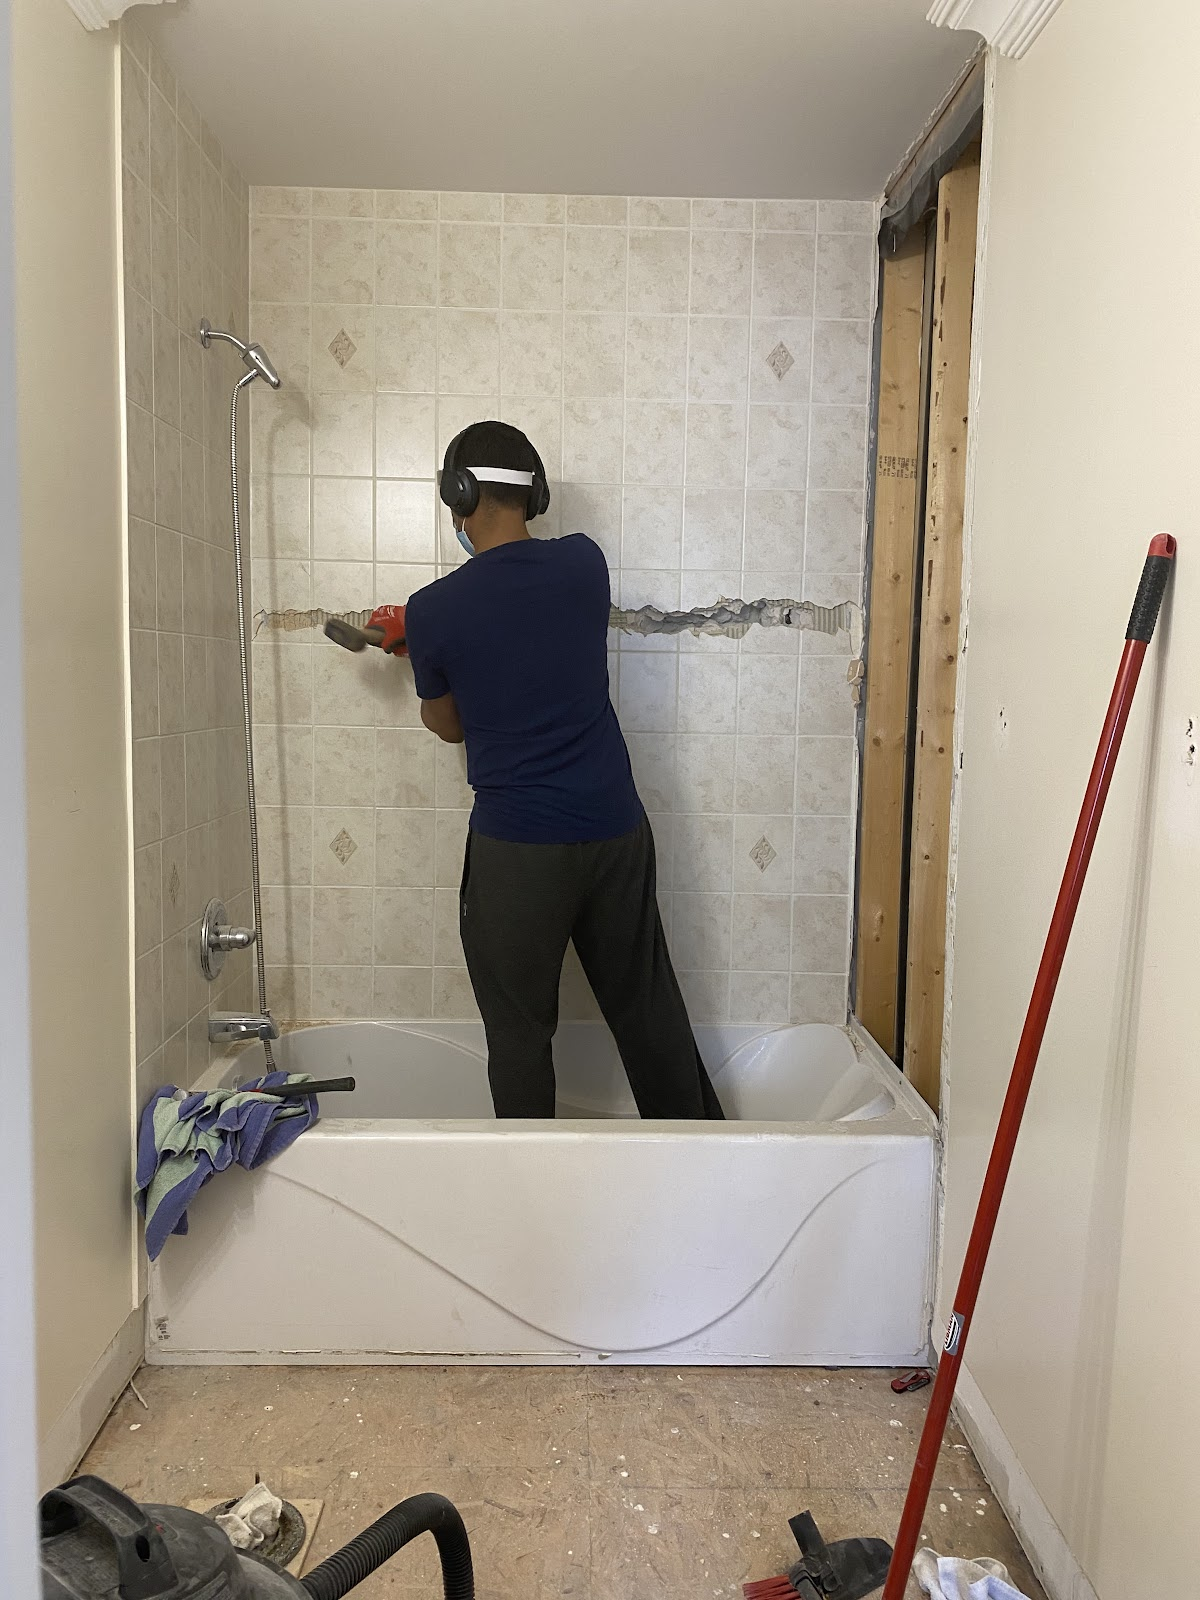 Smash shower tiles across the middle to remove them